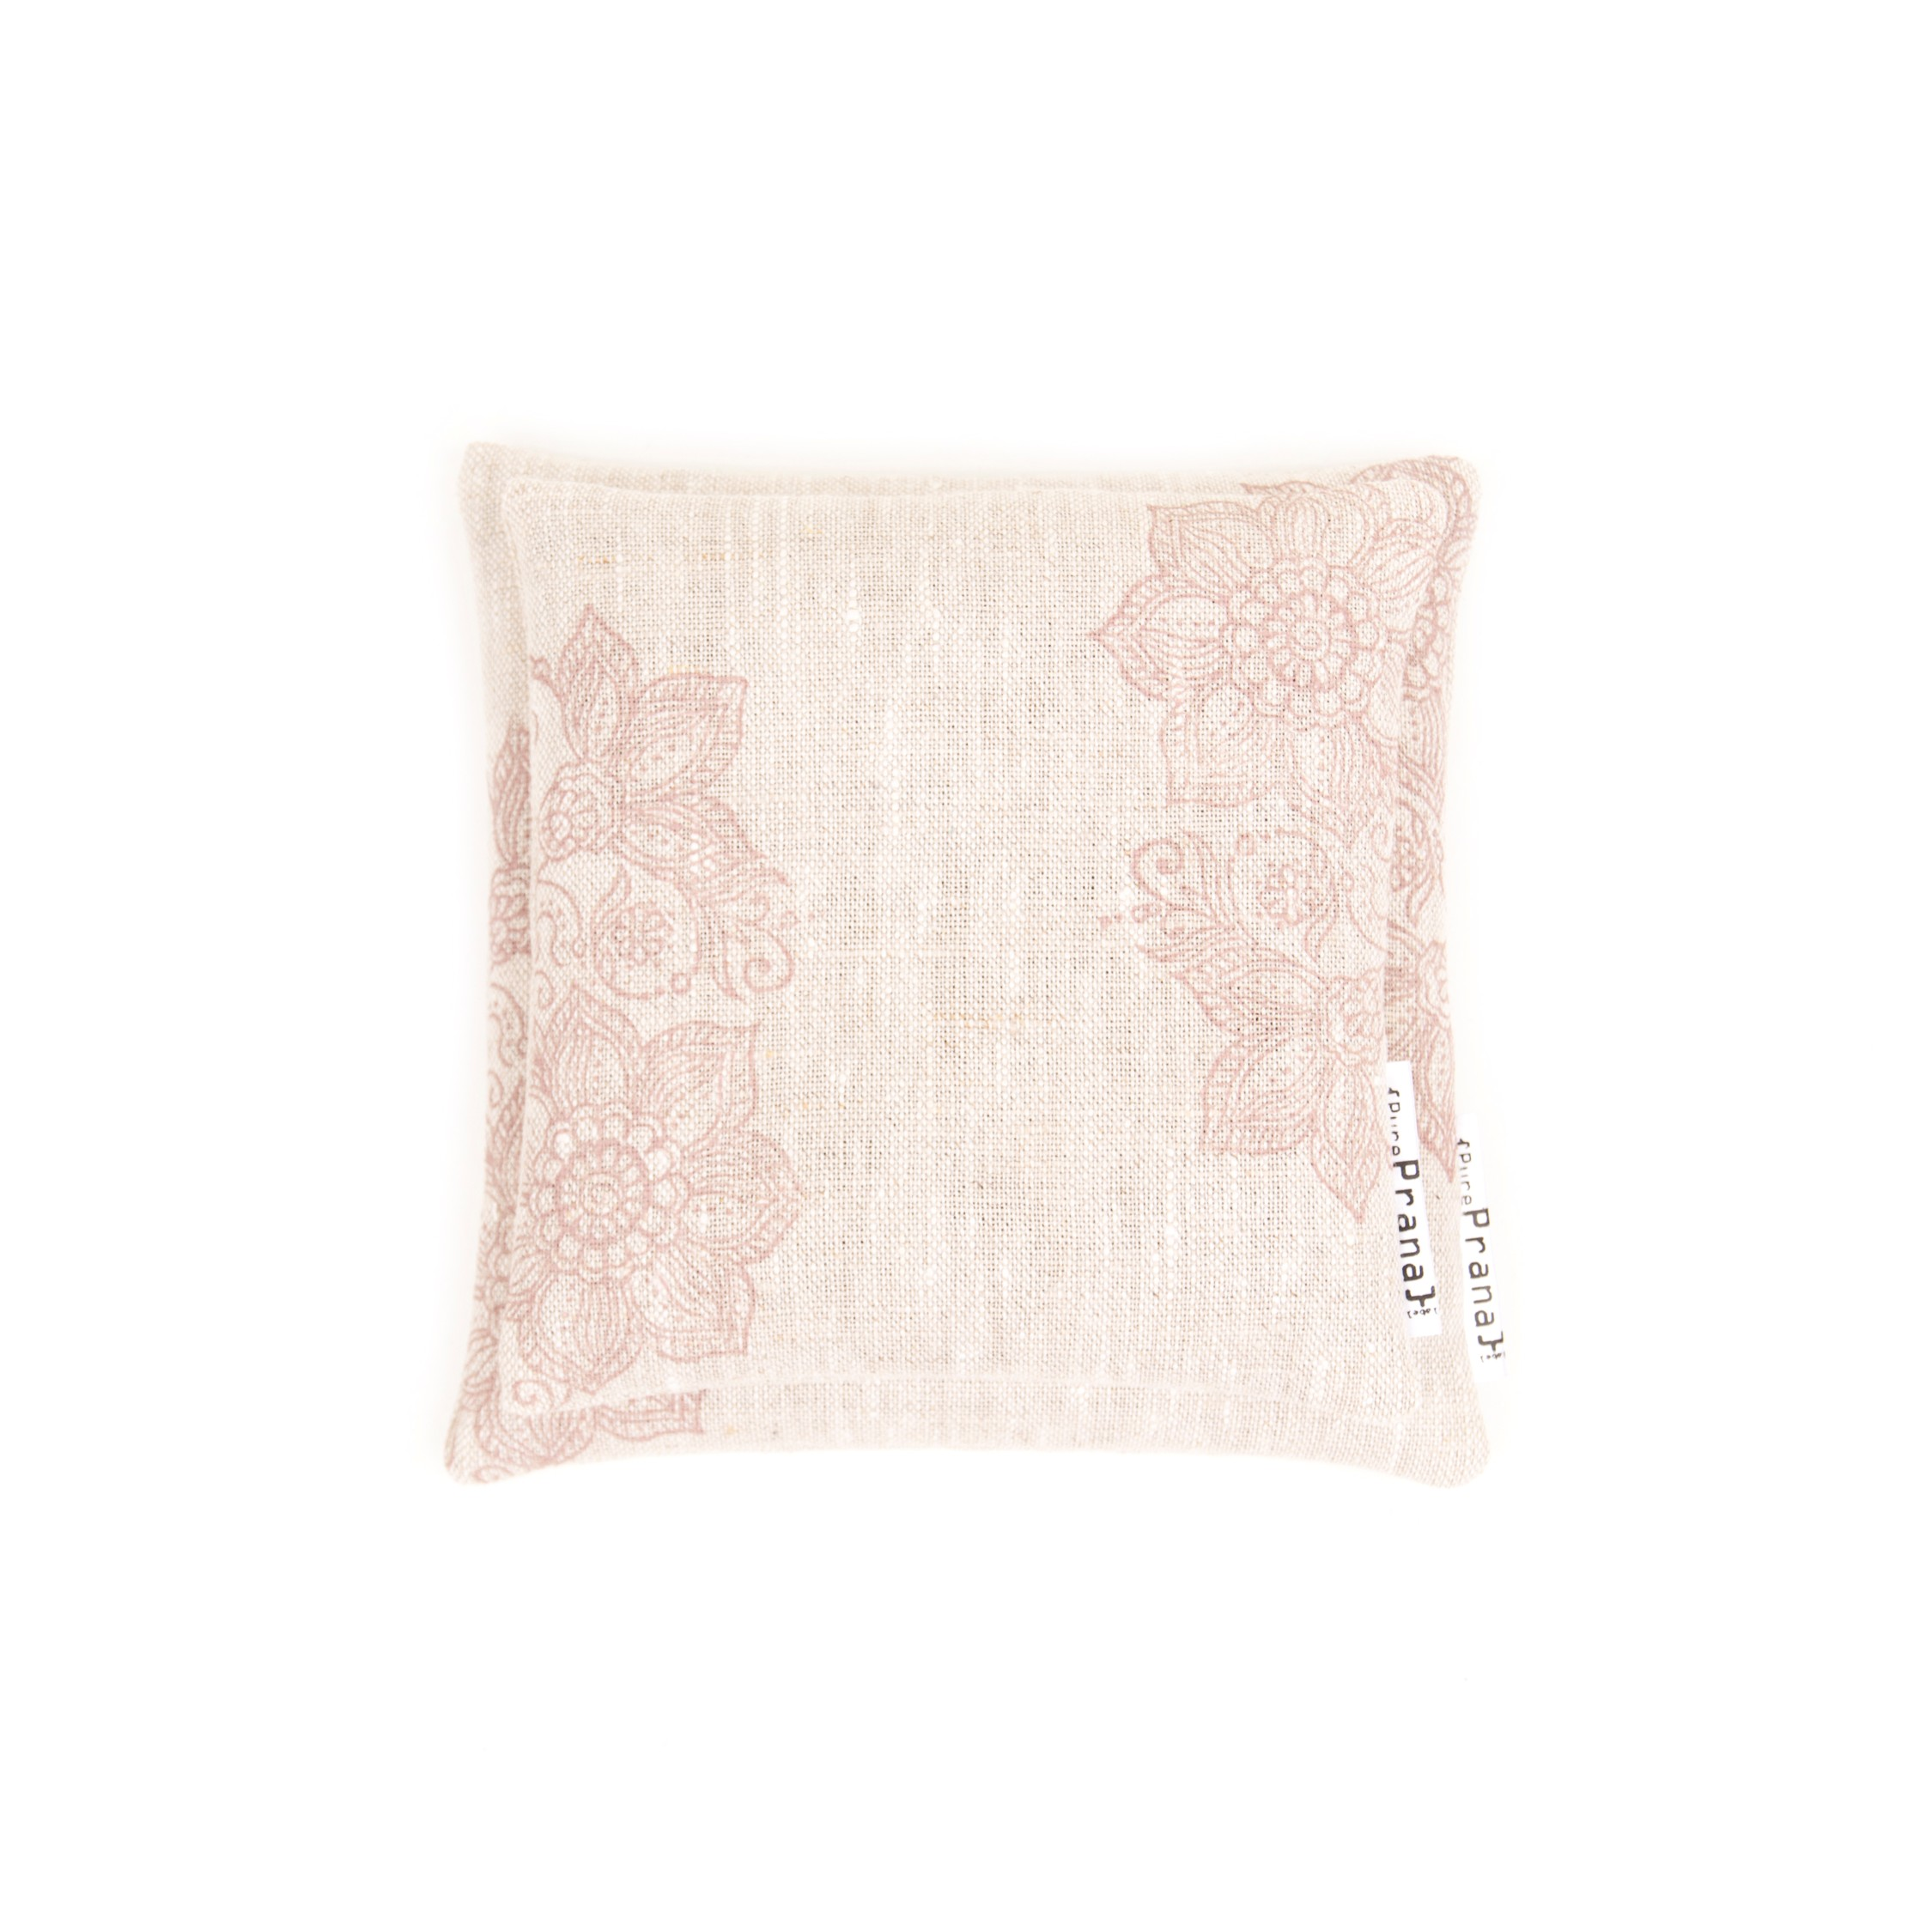 Handprinted singing bowl cushions by Pure Prana Label, natural fabric